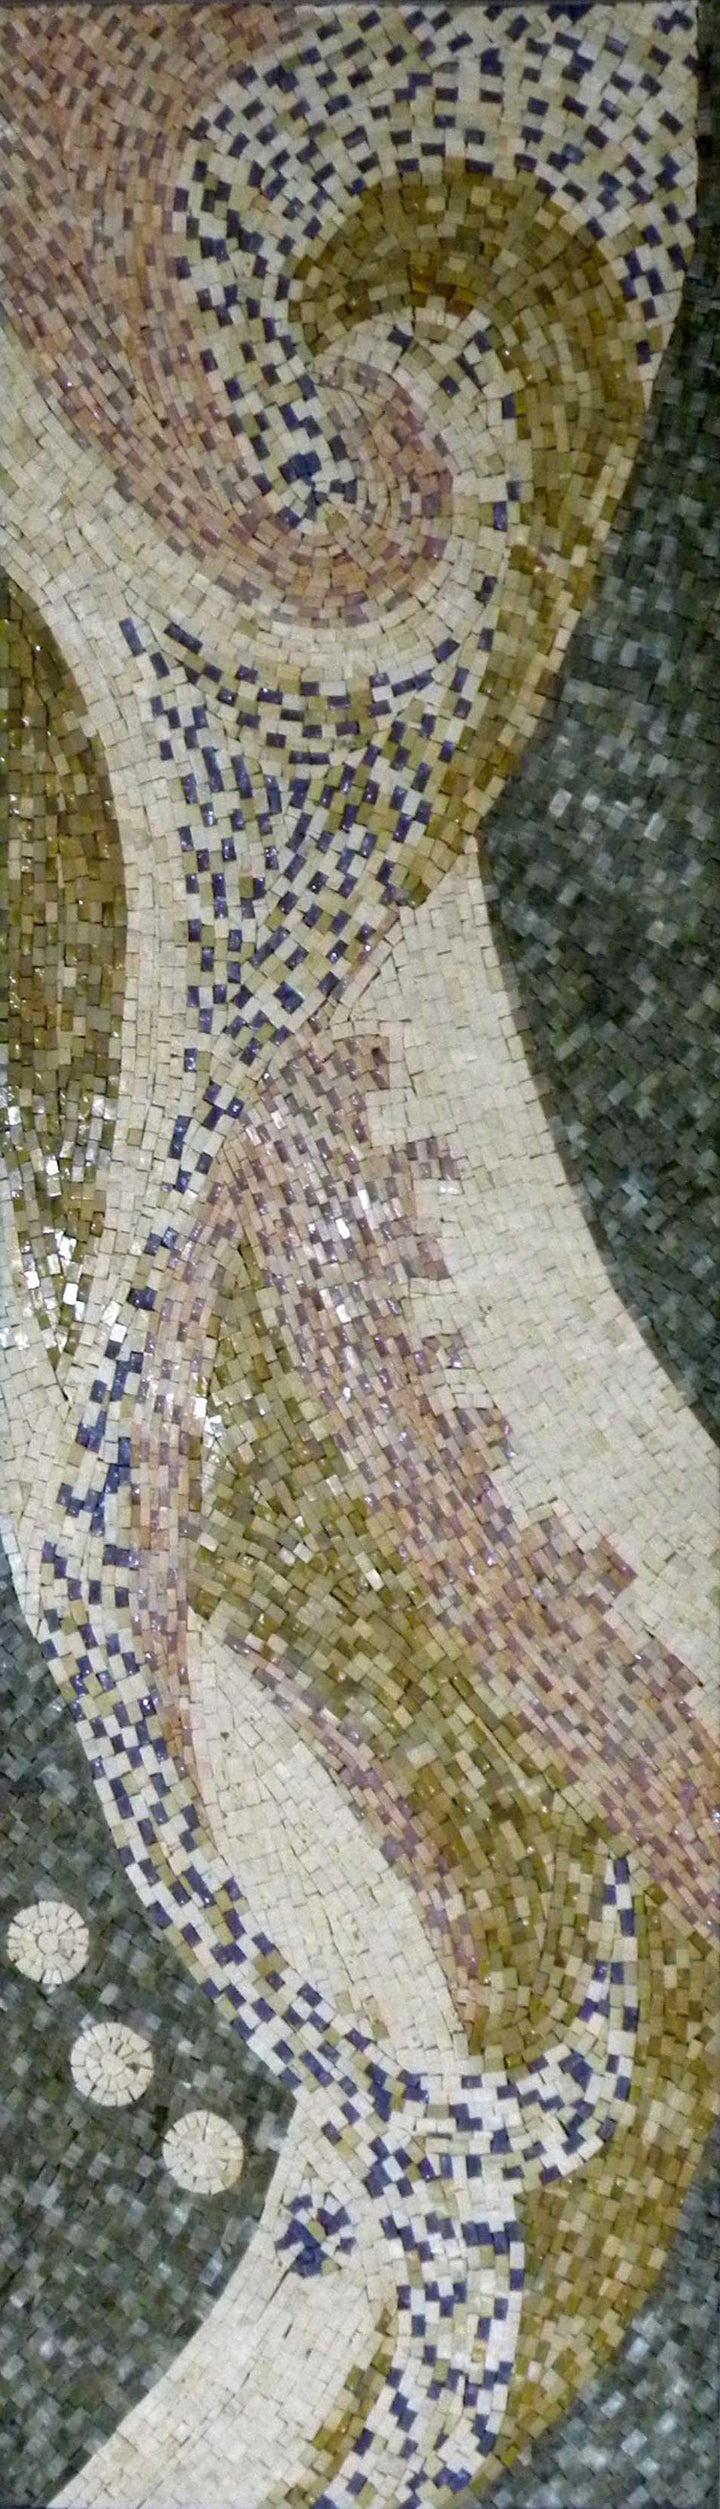 Abstract Mosaic Art - Impressionistic Patterns